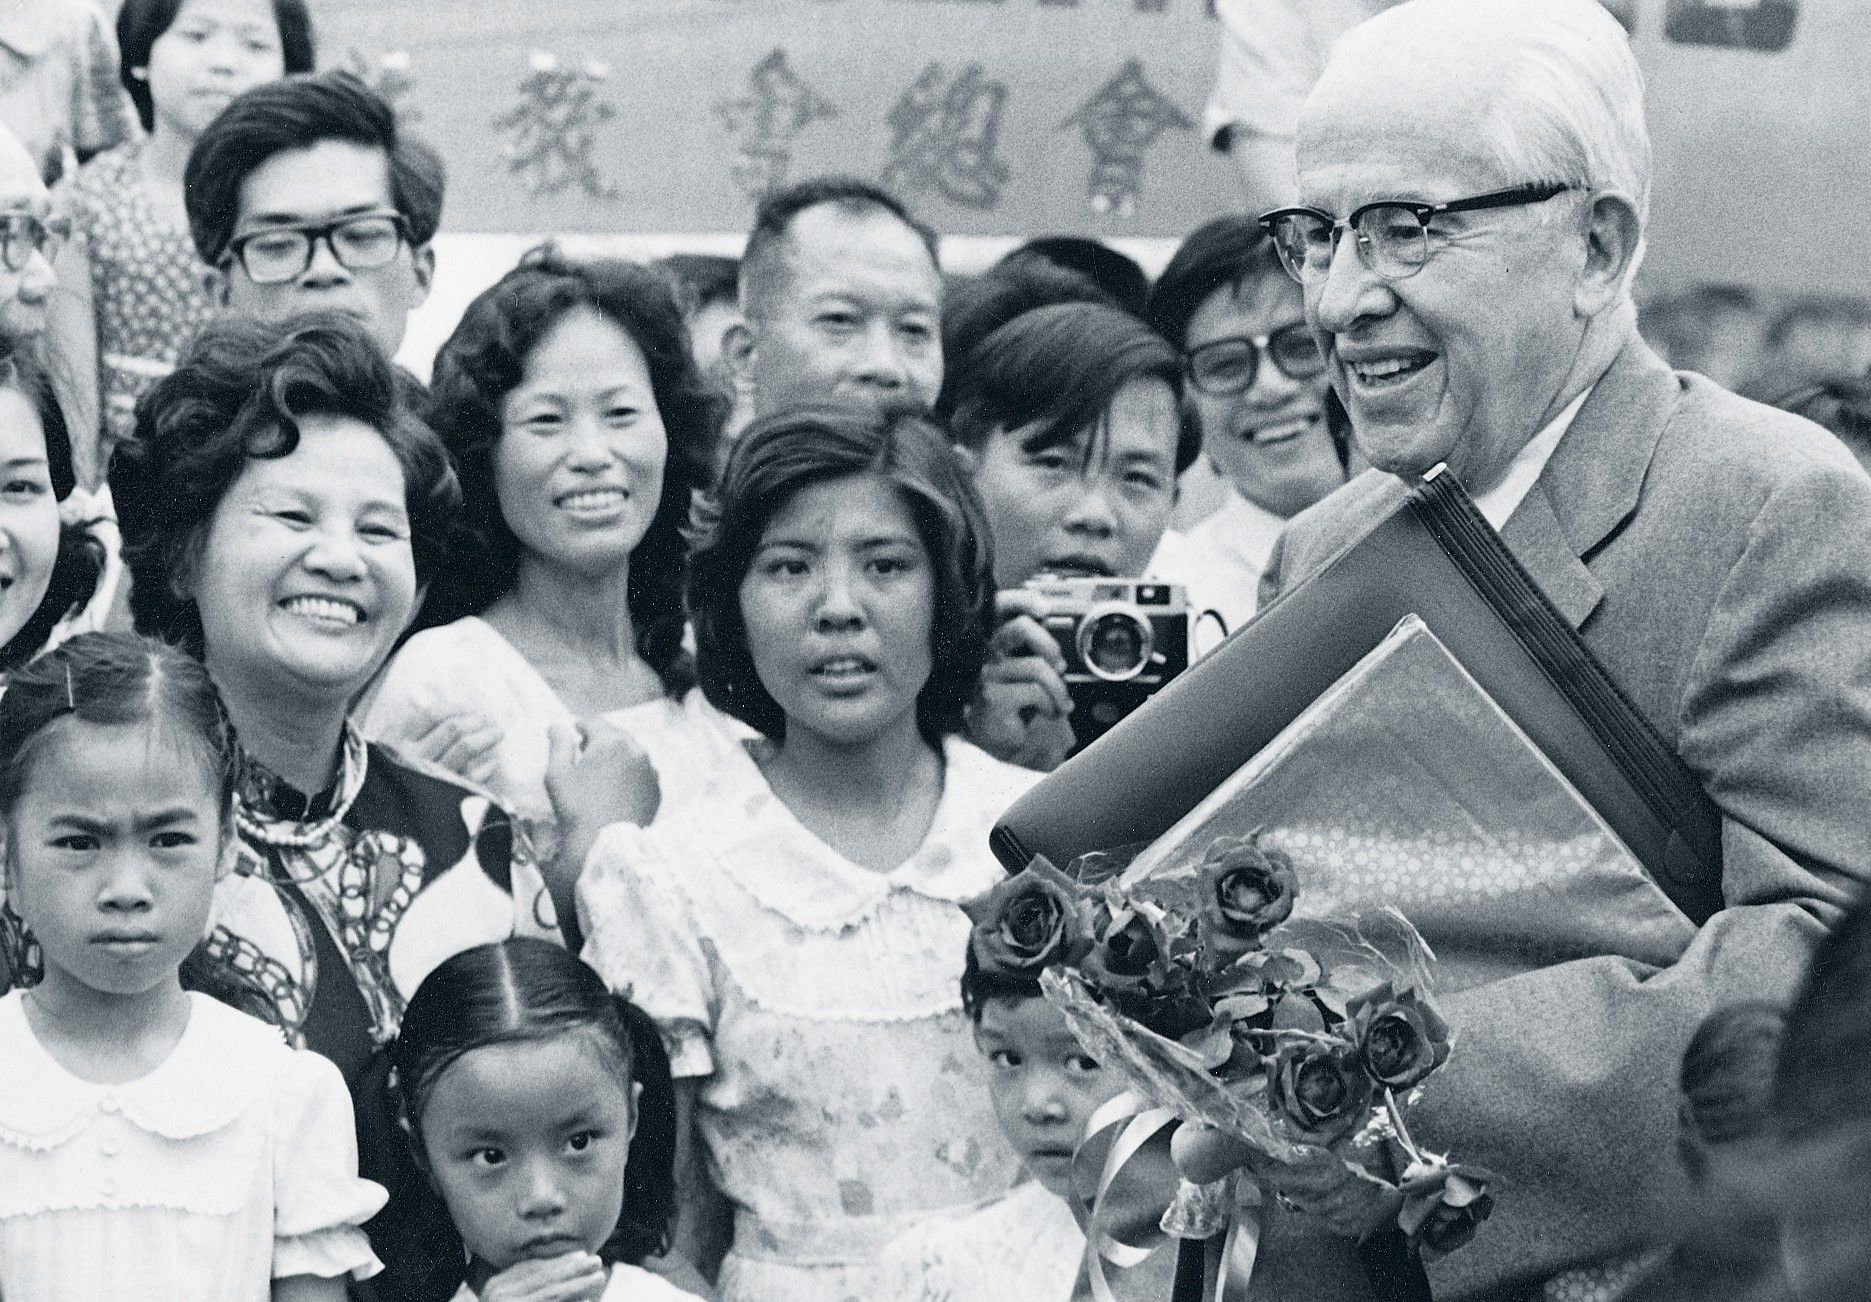 President Benson standing with members in Taiwan, around 1980.